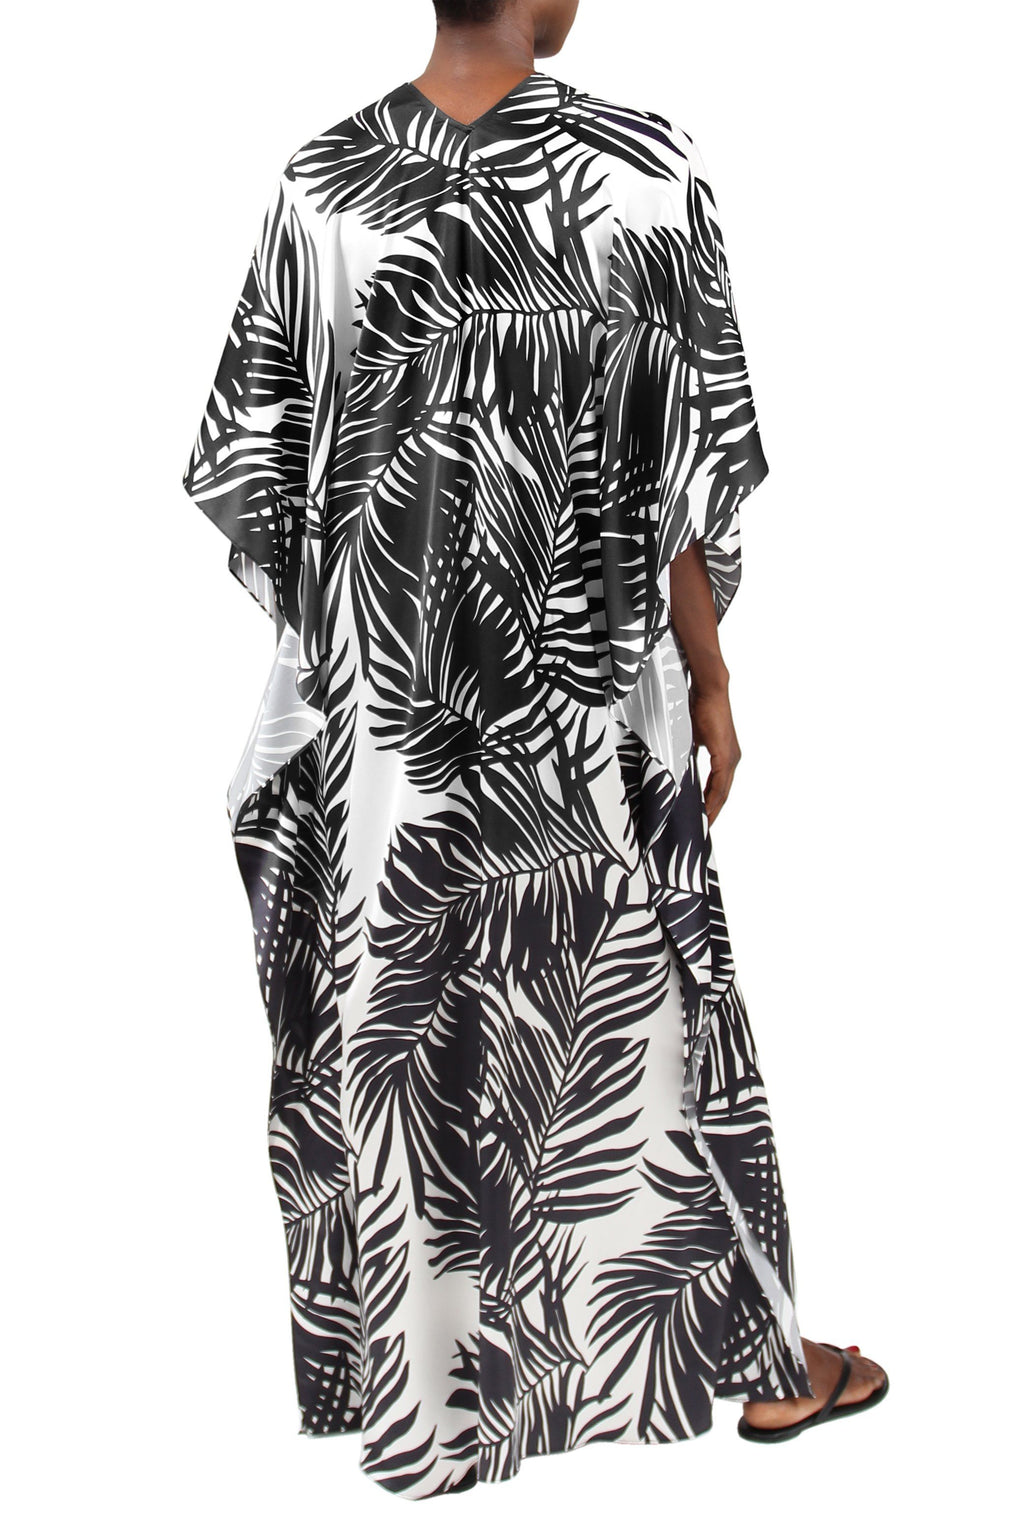 Palm Printed Silk Boubou Marie France Van Damme